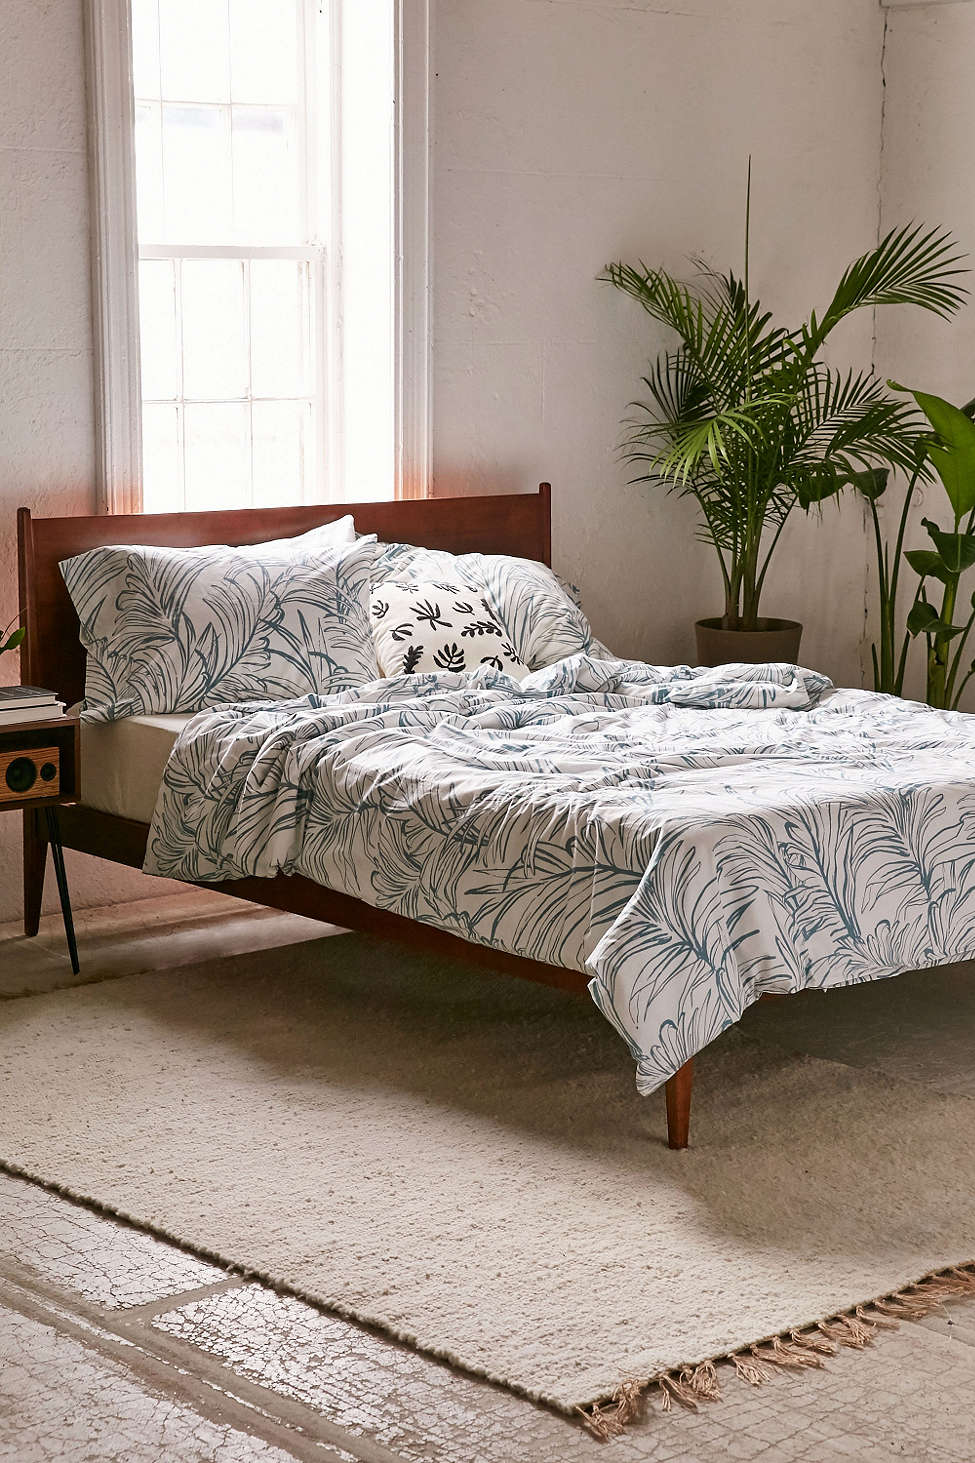 Beachy bedding from Urban Outfitters